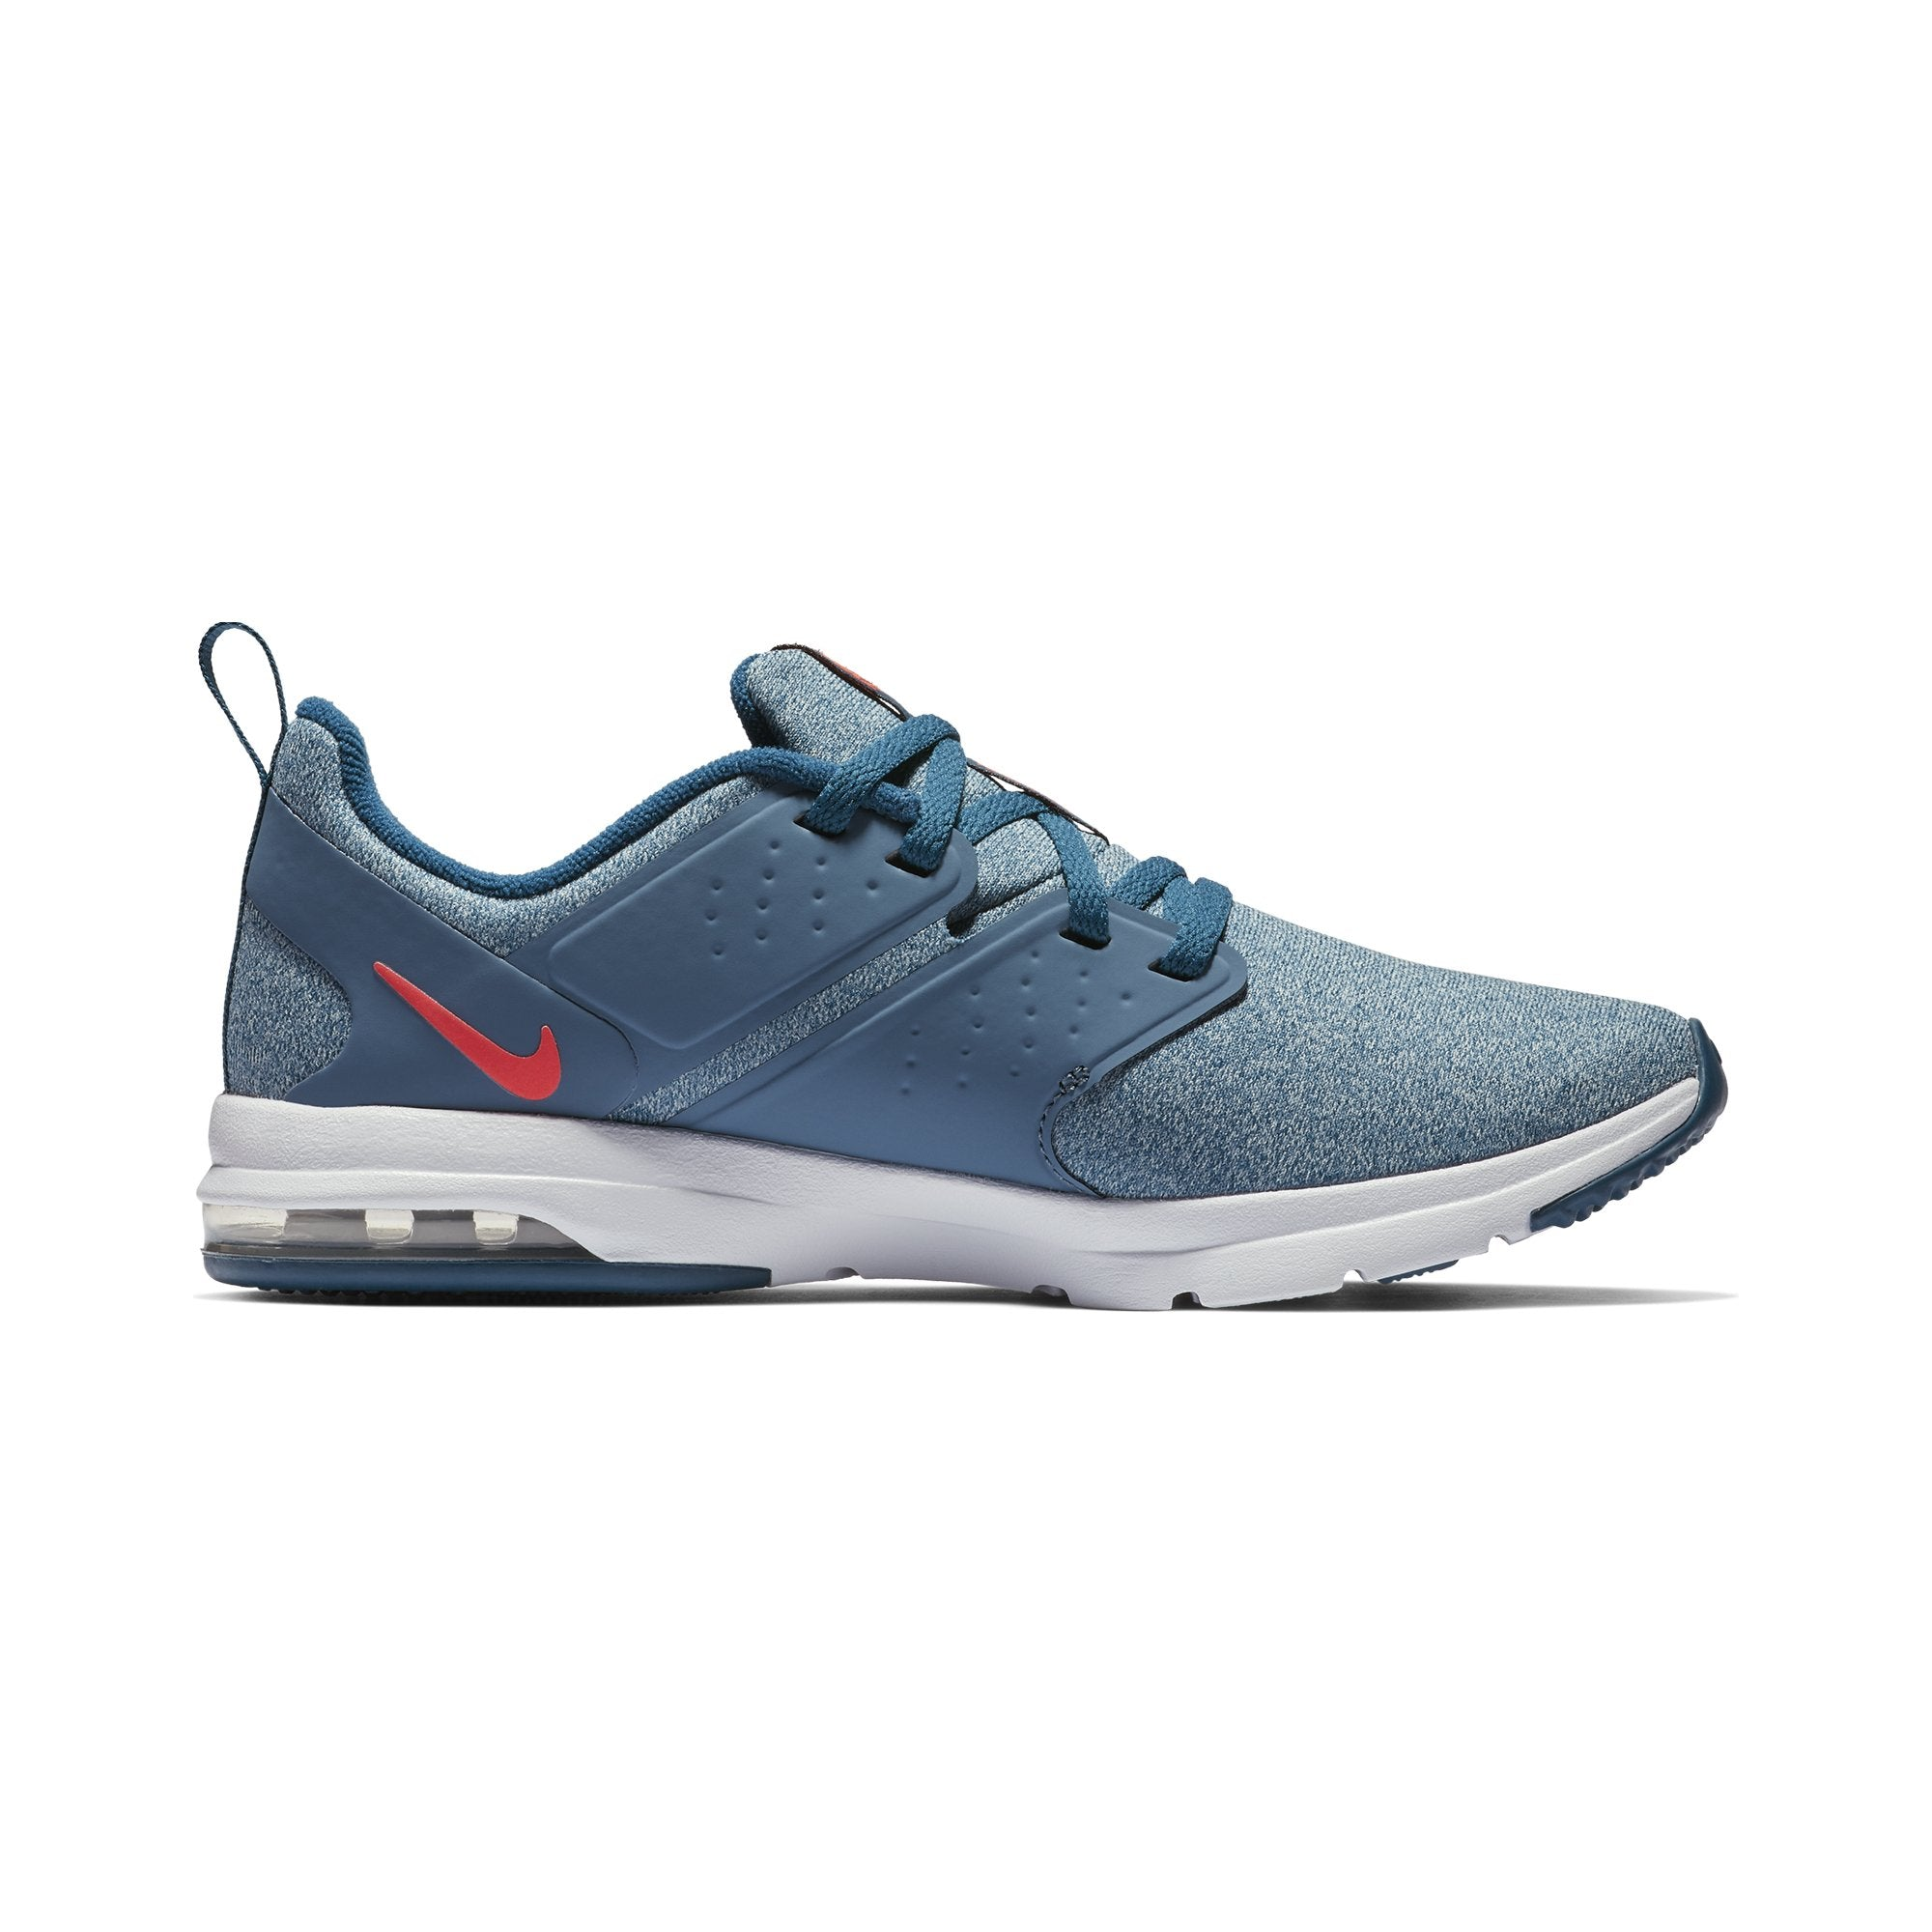 0ce64d95021fe Buy Women s Training Shoes Online in Singapore